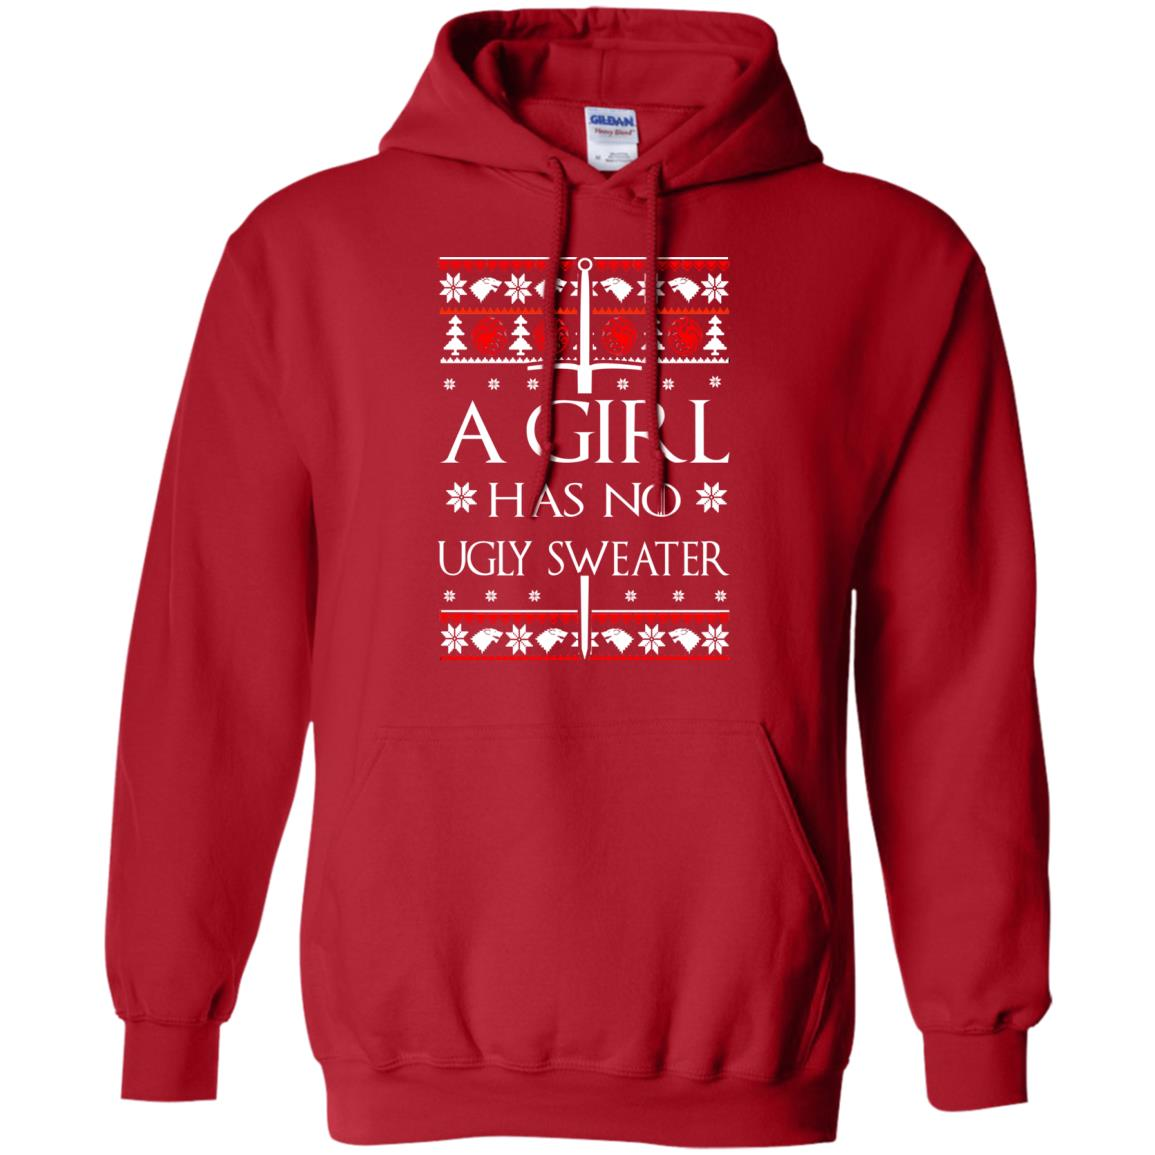 image 1504 - A Girl Has no Ugly Sweater, Shirt, Christmas Sweatshirt Game Of Thrones